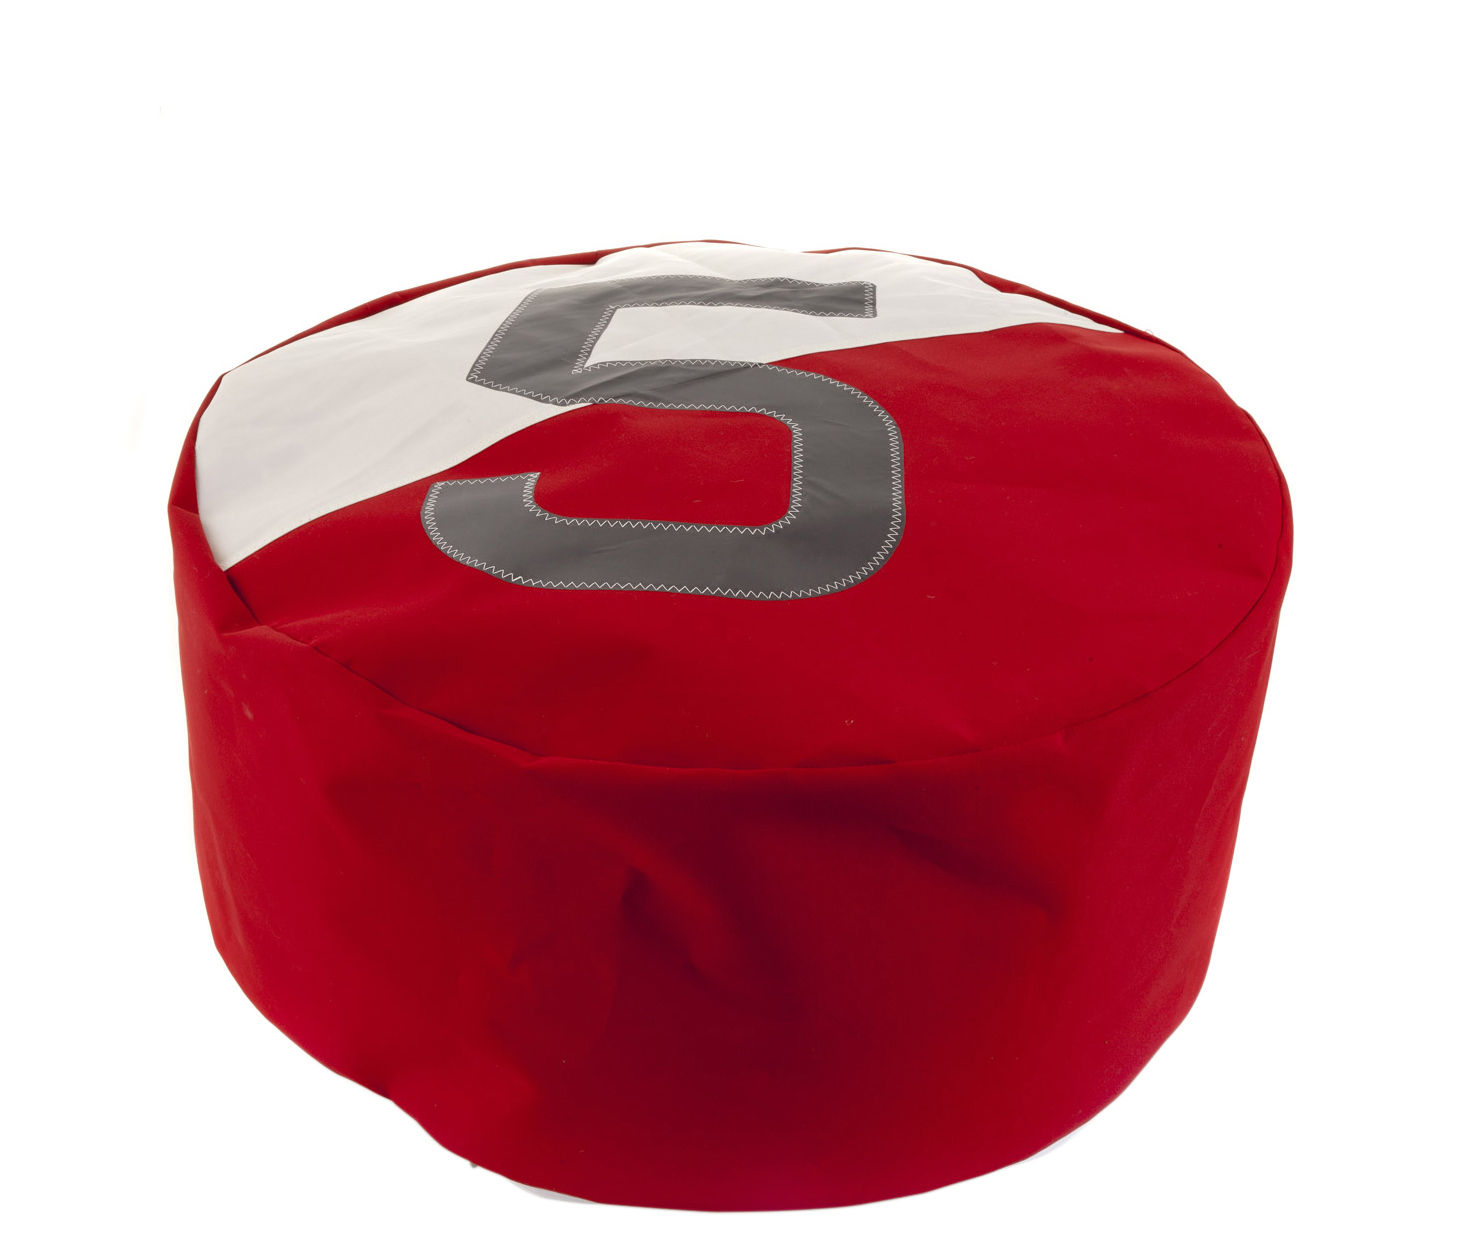 Duo Pouf - Ø 72 cm / Recycled boat sail Red & white / Grey by 727 Sailbags